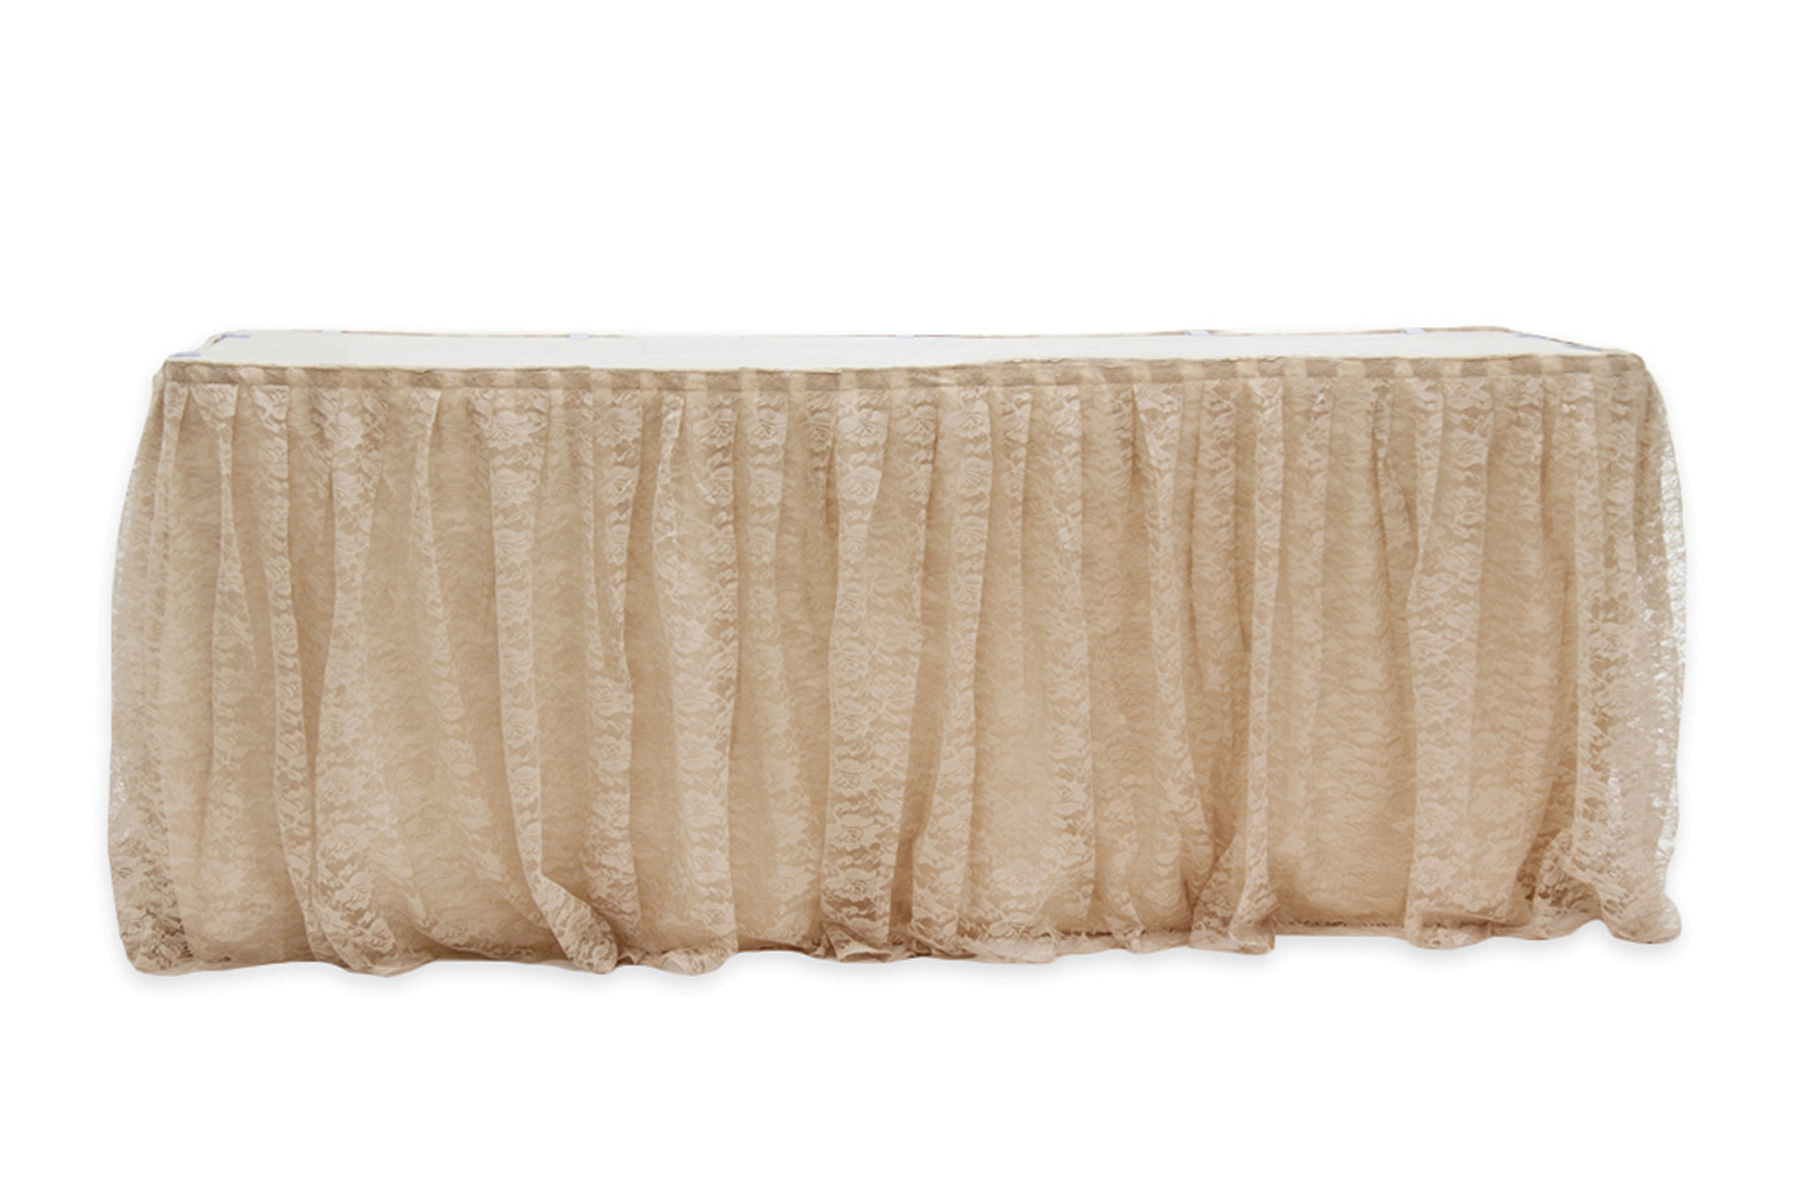 Skirting Lace And Burlap For Round Or Rectangular Table